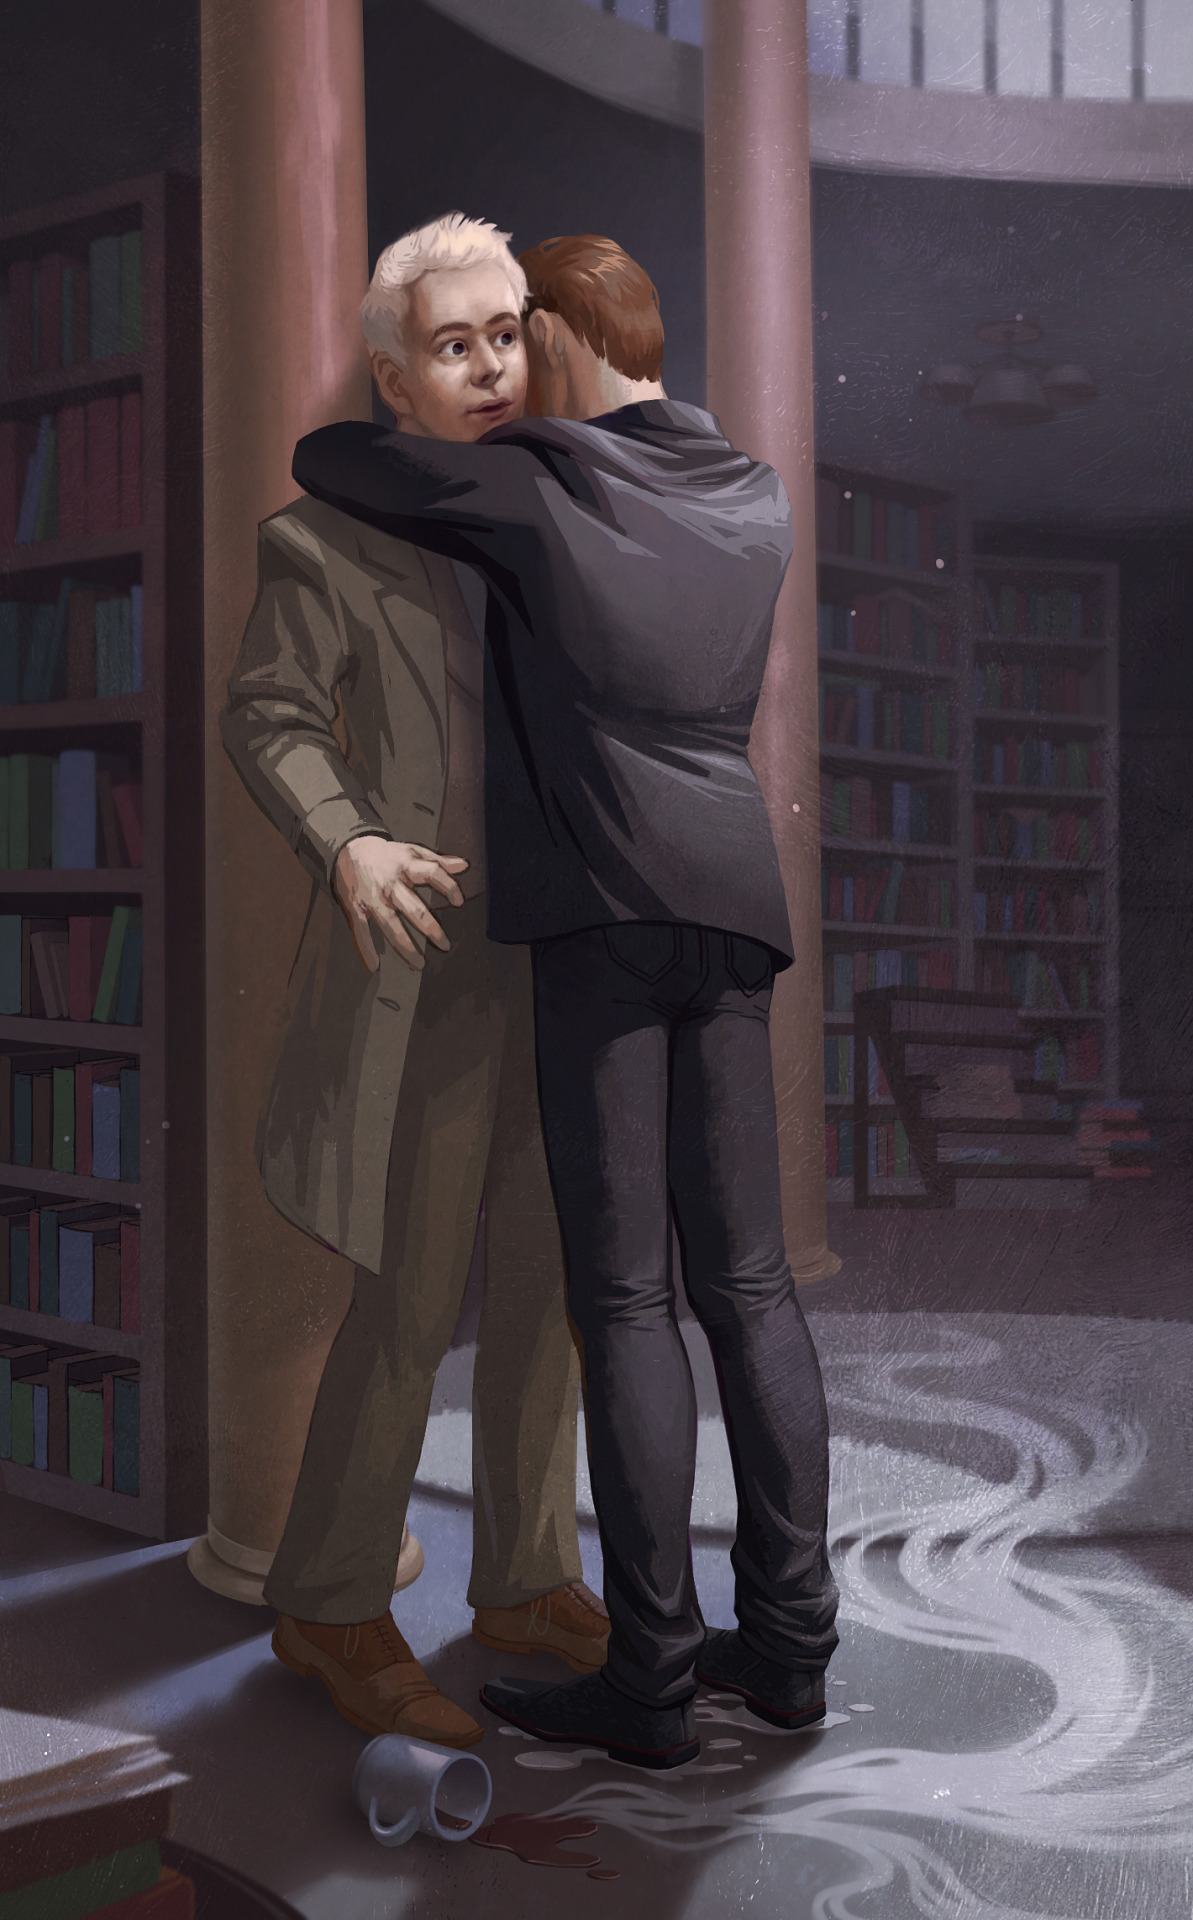 Aziraphale and Crowley in the bookshop. A drenched Crowley clinging to Aziraphale while the angel's hot chocolate lies spilled and forgotten on the floor